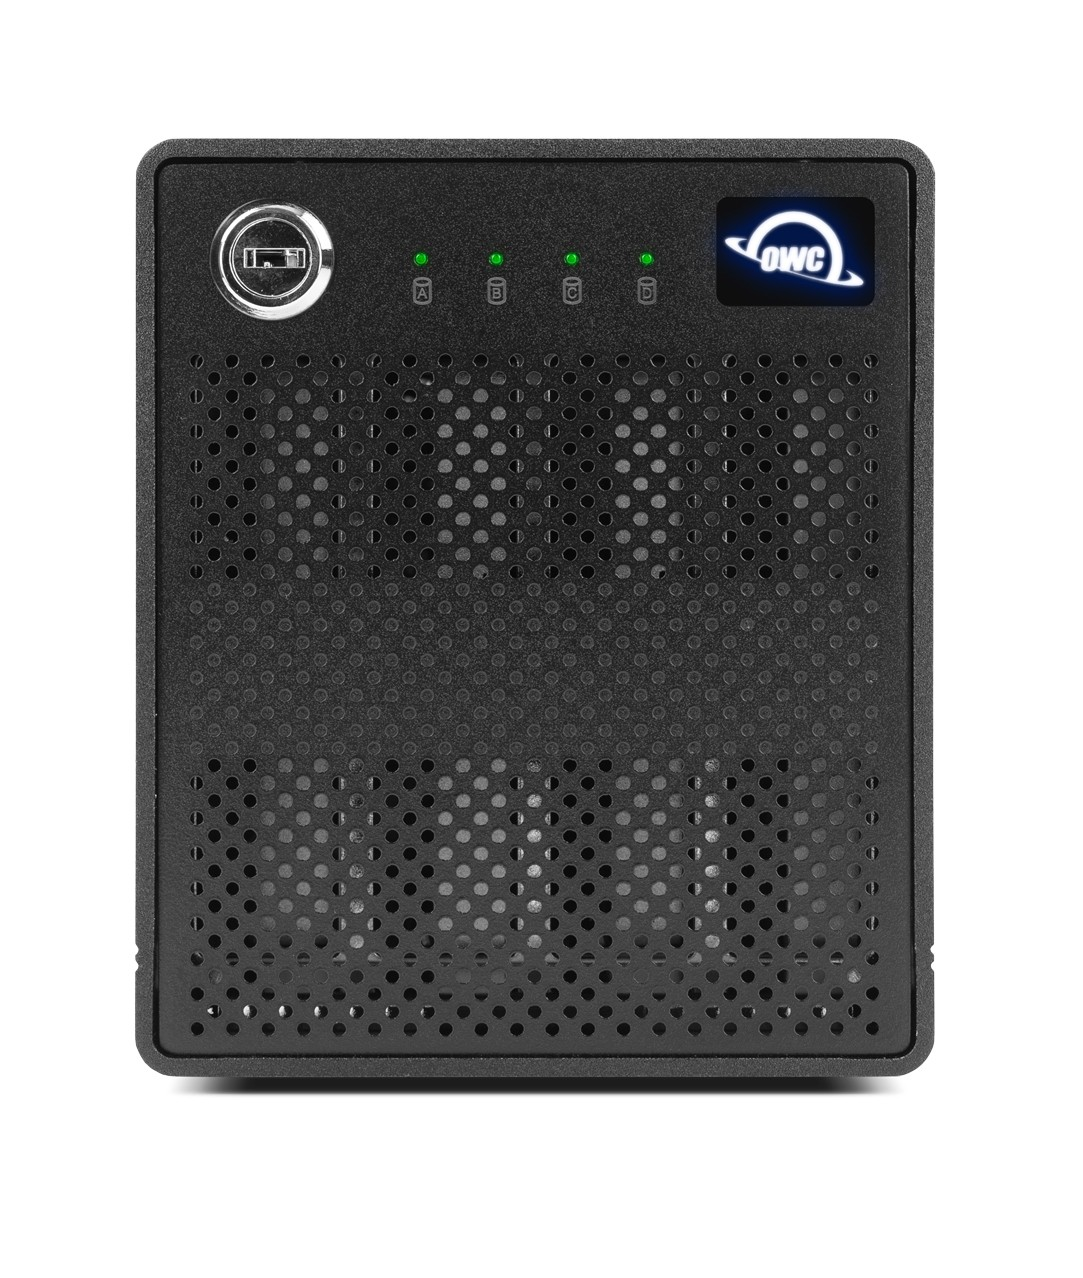 8.0TB OWC ThunderBay 4 mini RAID 5 Four-Drive SSD External Thunderbolt 2 Storage Solution, OWCTB4MSRSSD08T